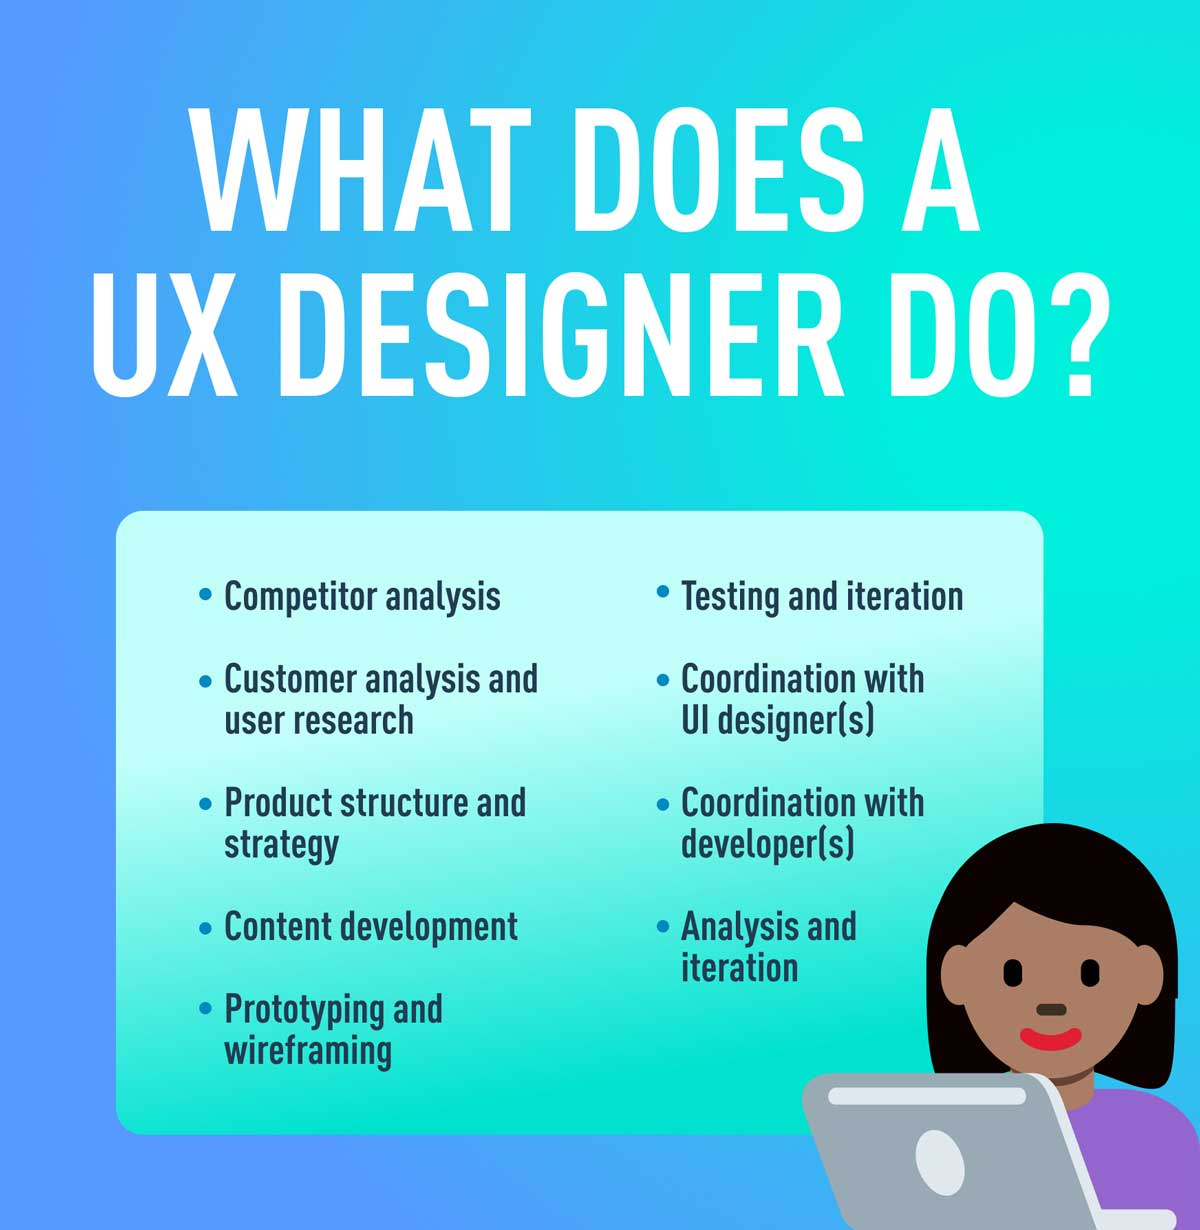 A list of the typical tasks carried out by UX designers